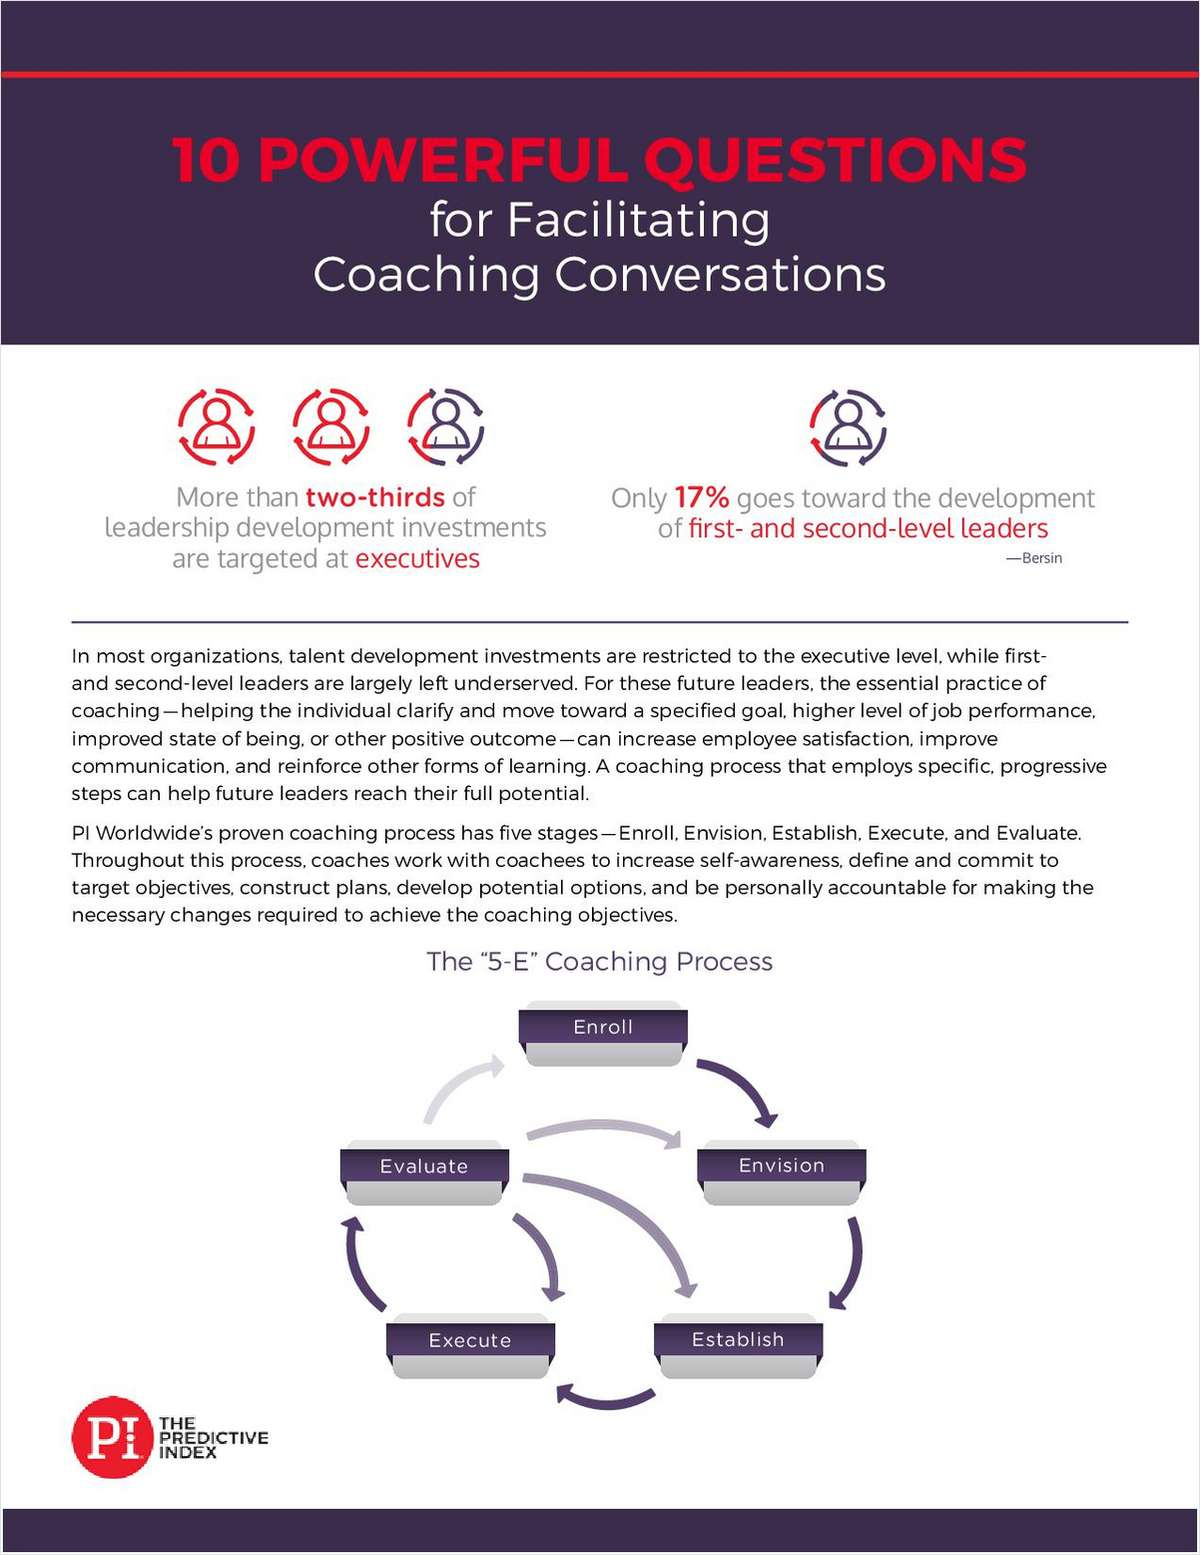 10 Powerful Questions for Facilitating Coaching Conversations